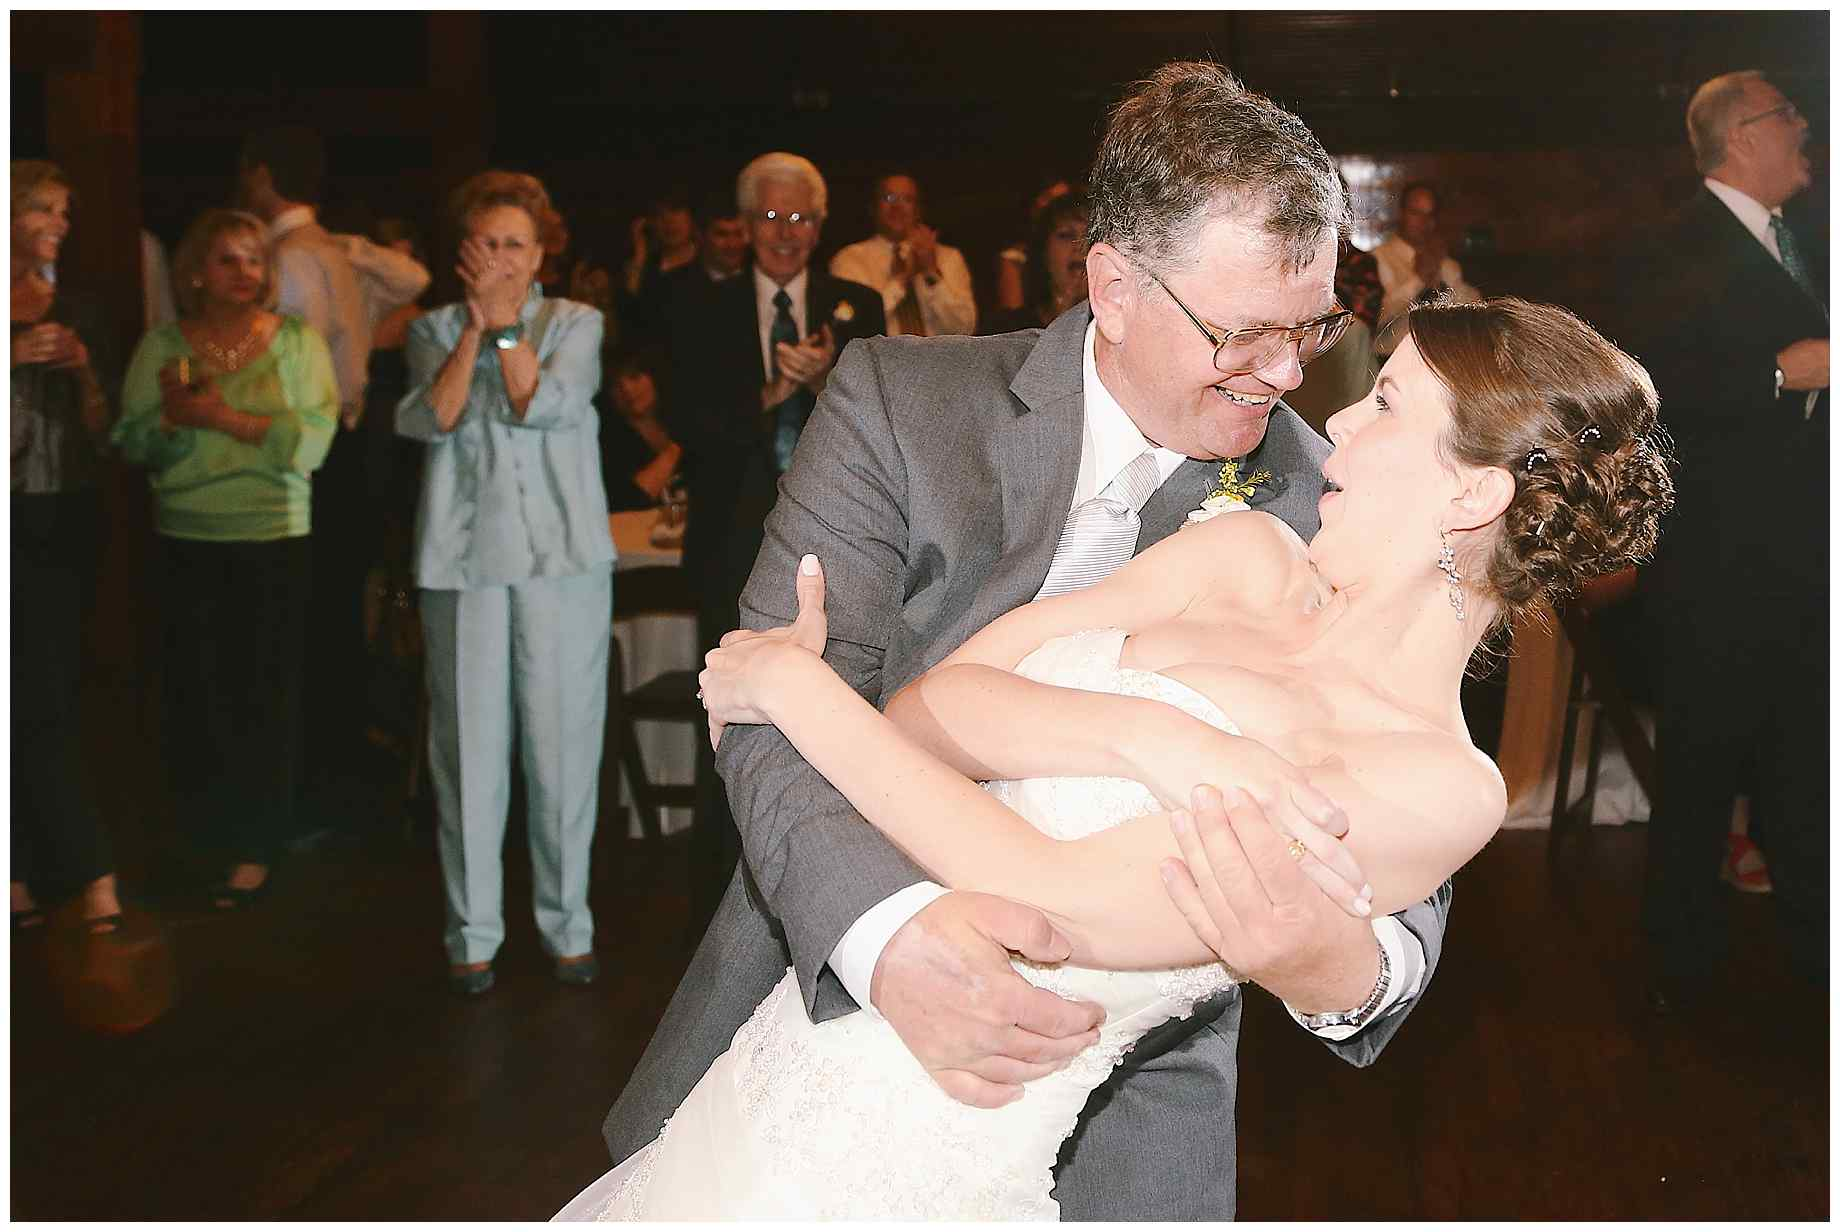 top-father-daughter-wedding-dance-04B